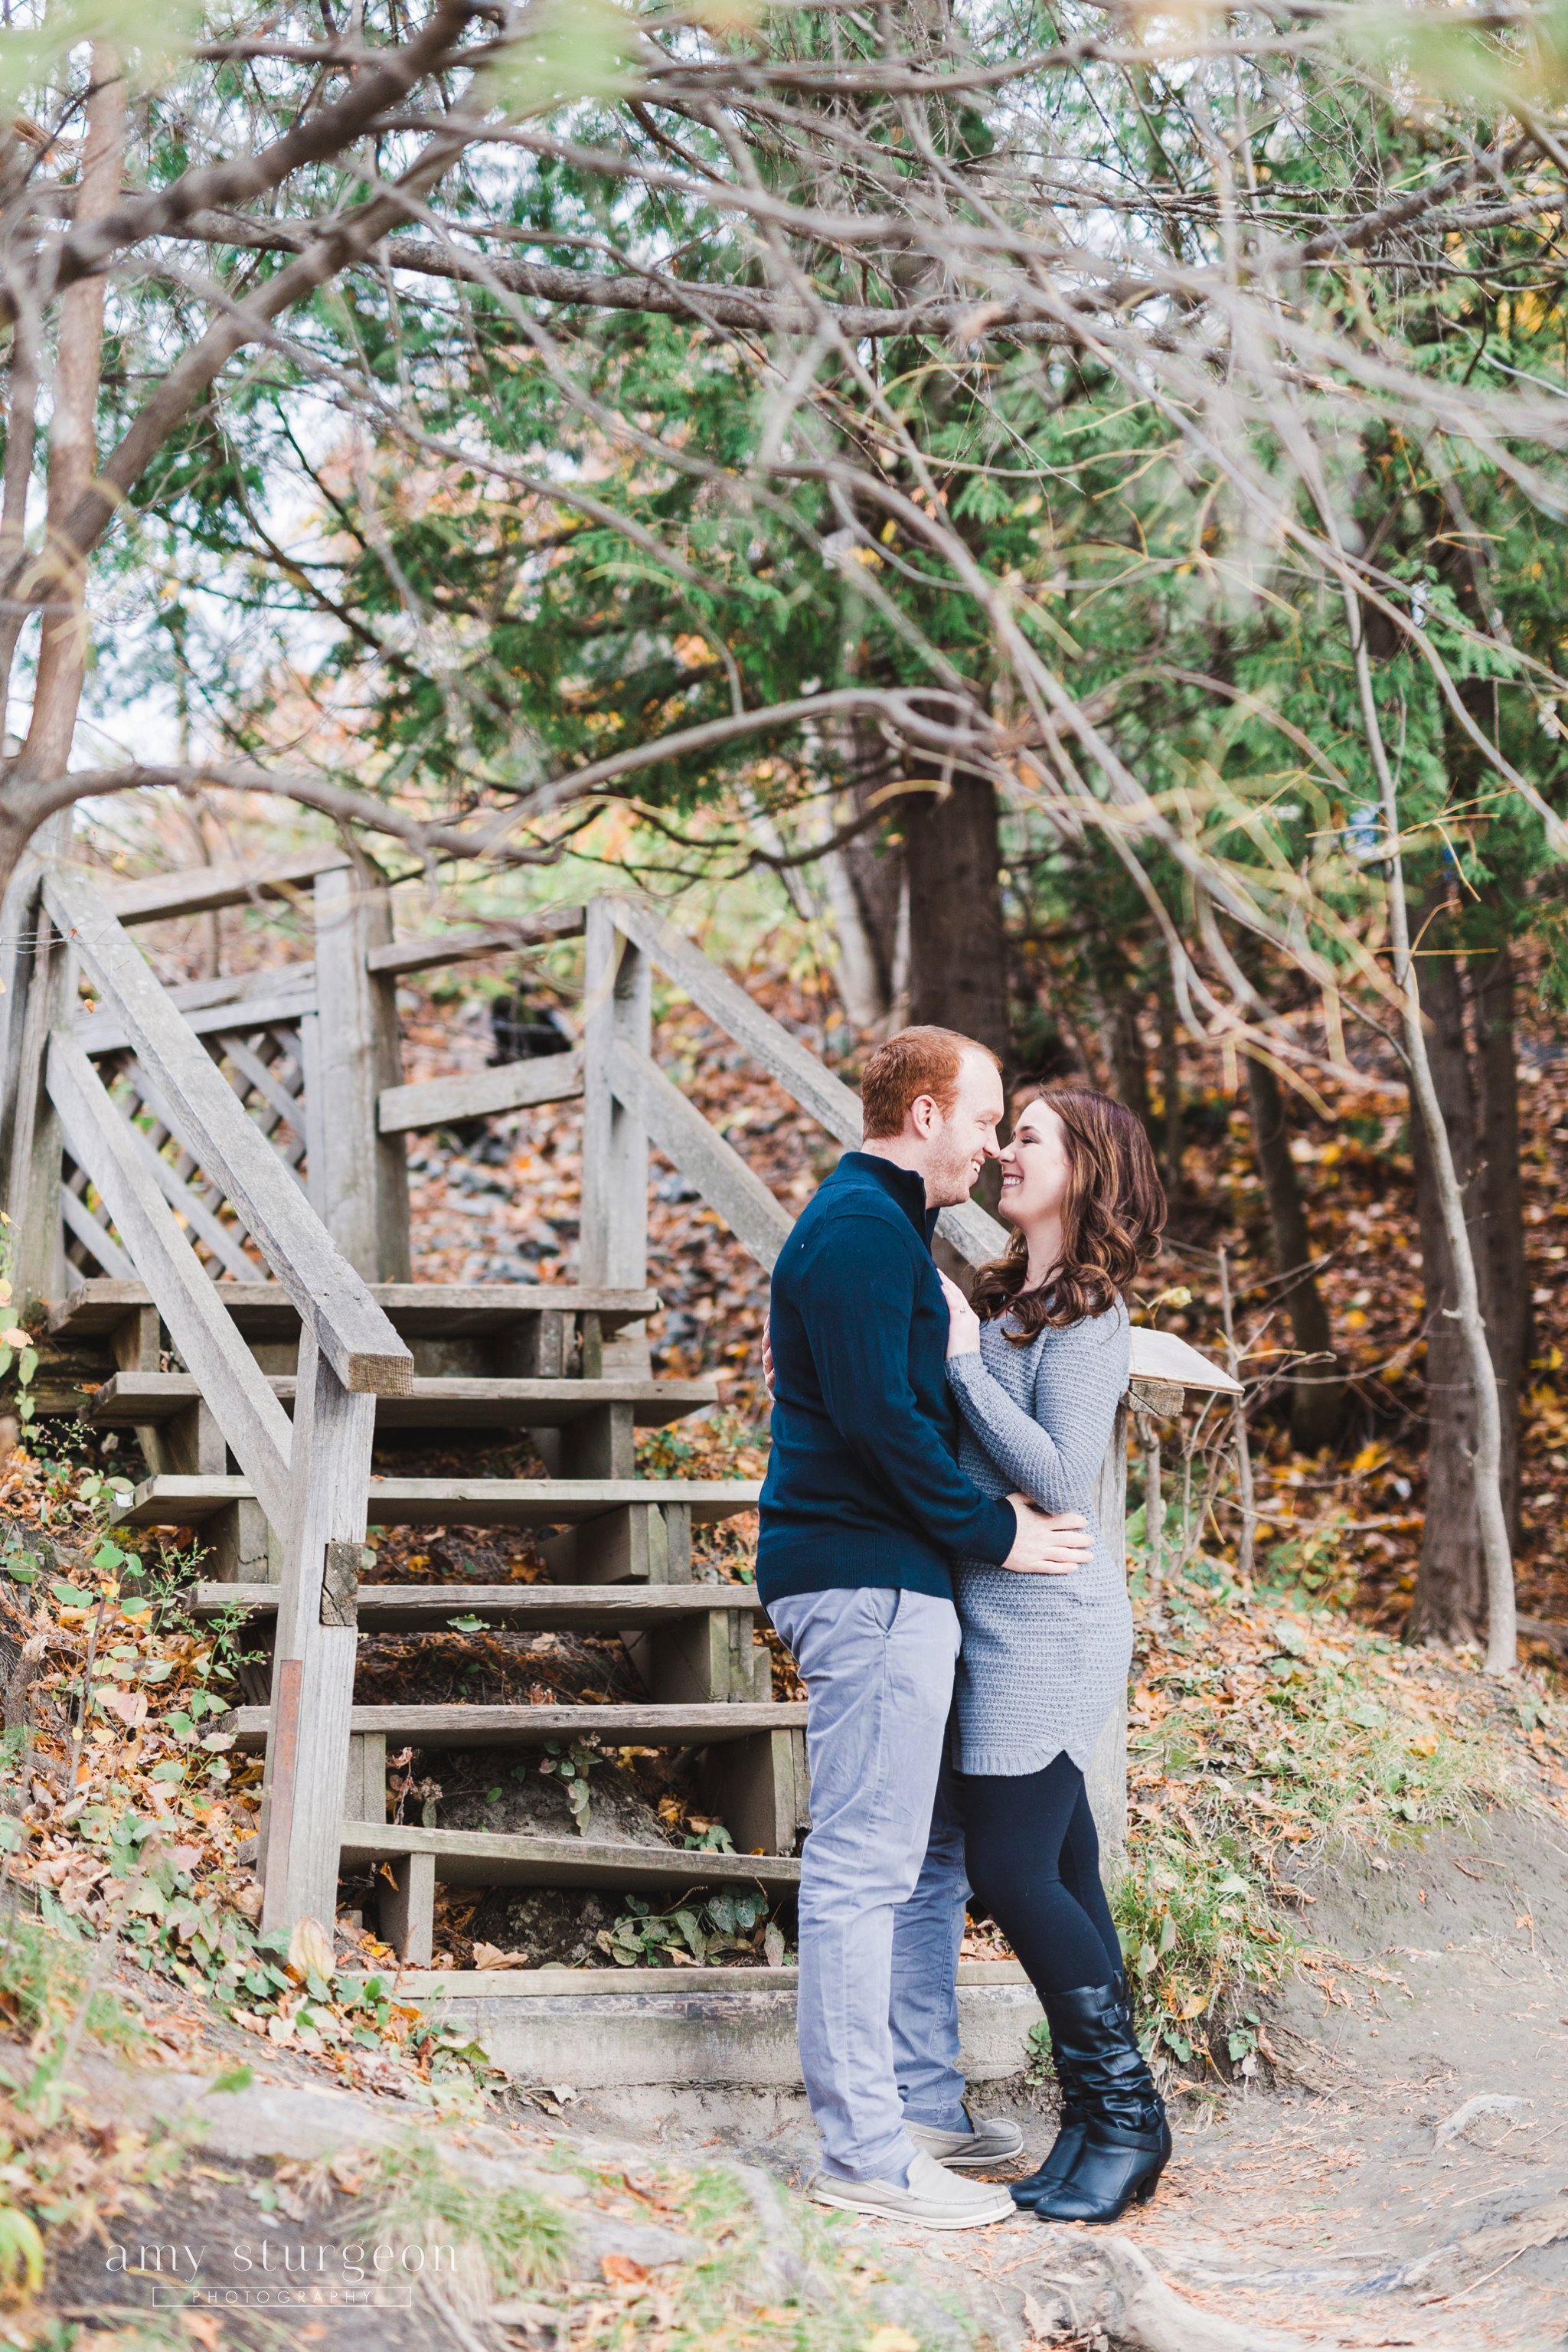 Where he proposed at the Wakefield Engagement Session by the covered bridge